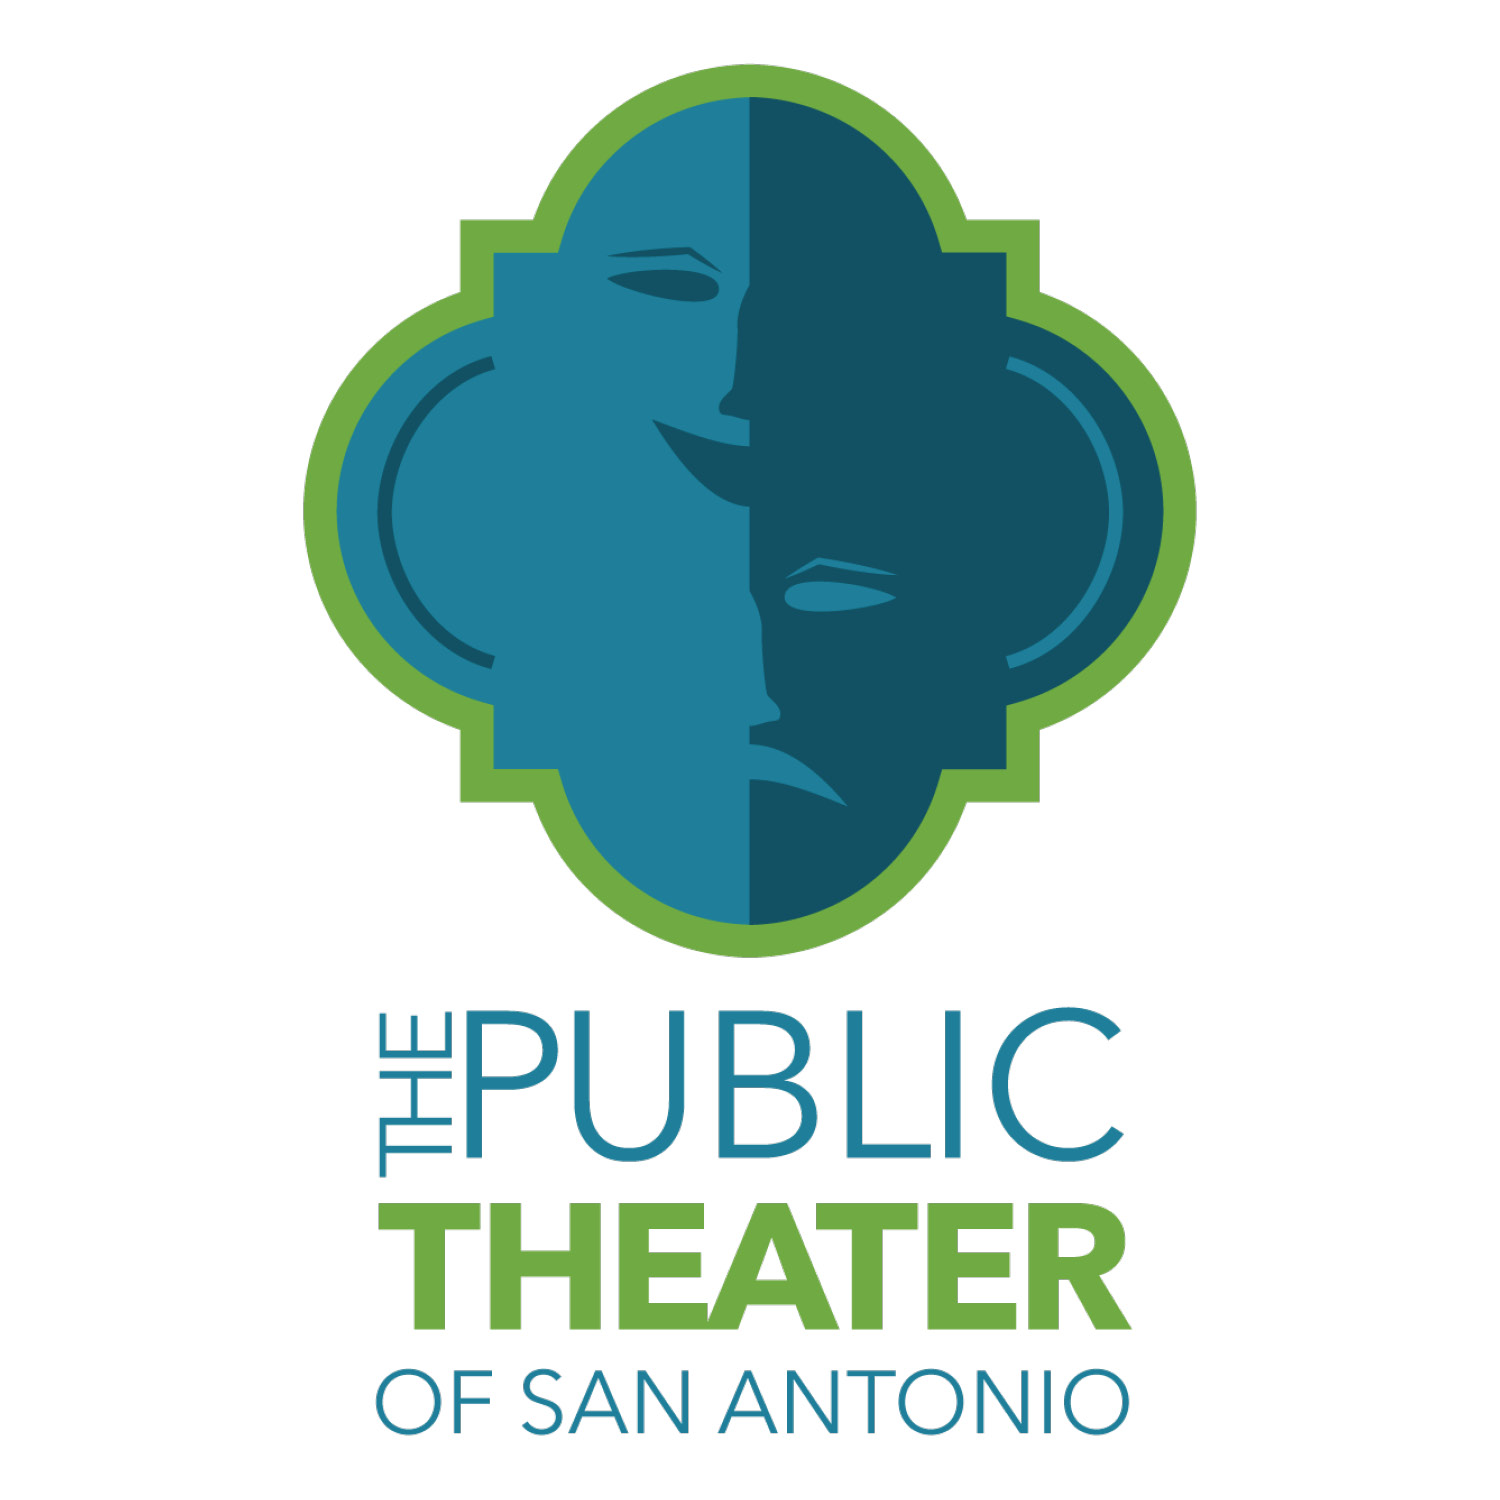 The Public Theater